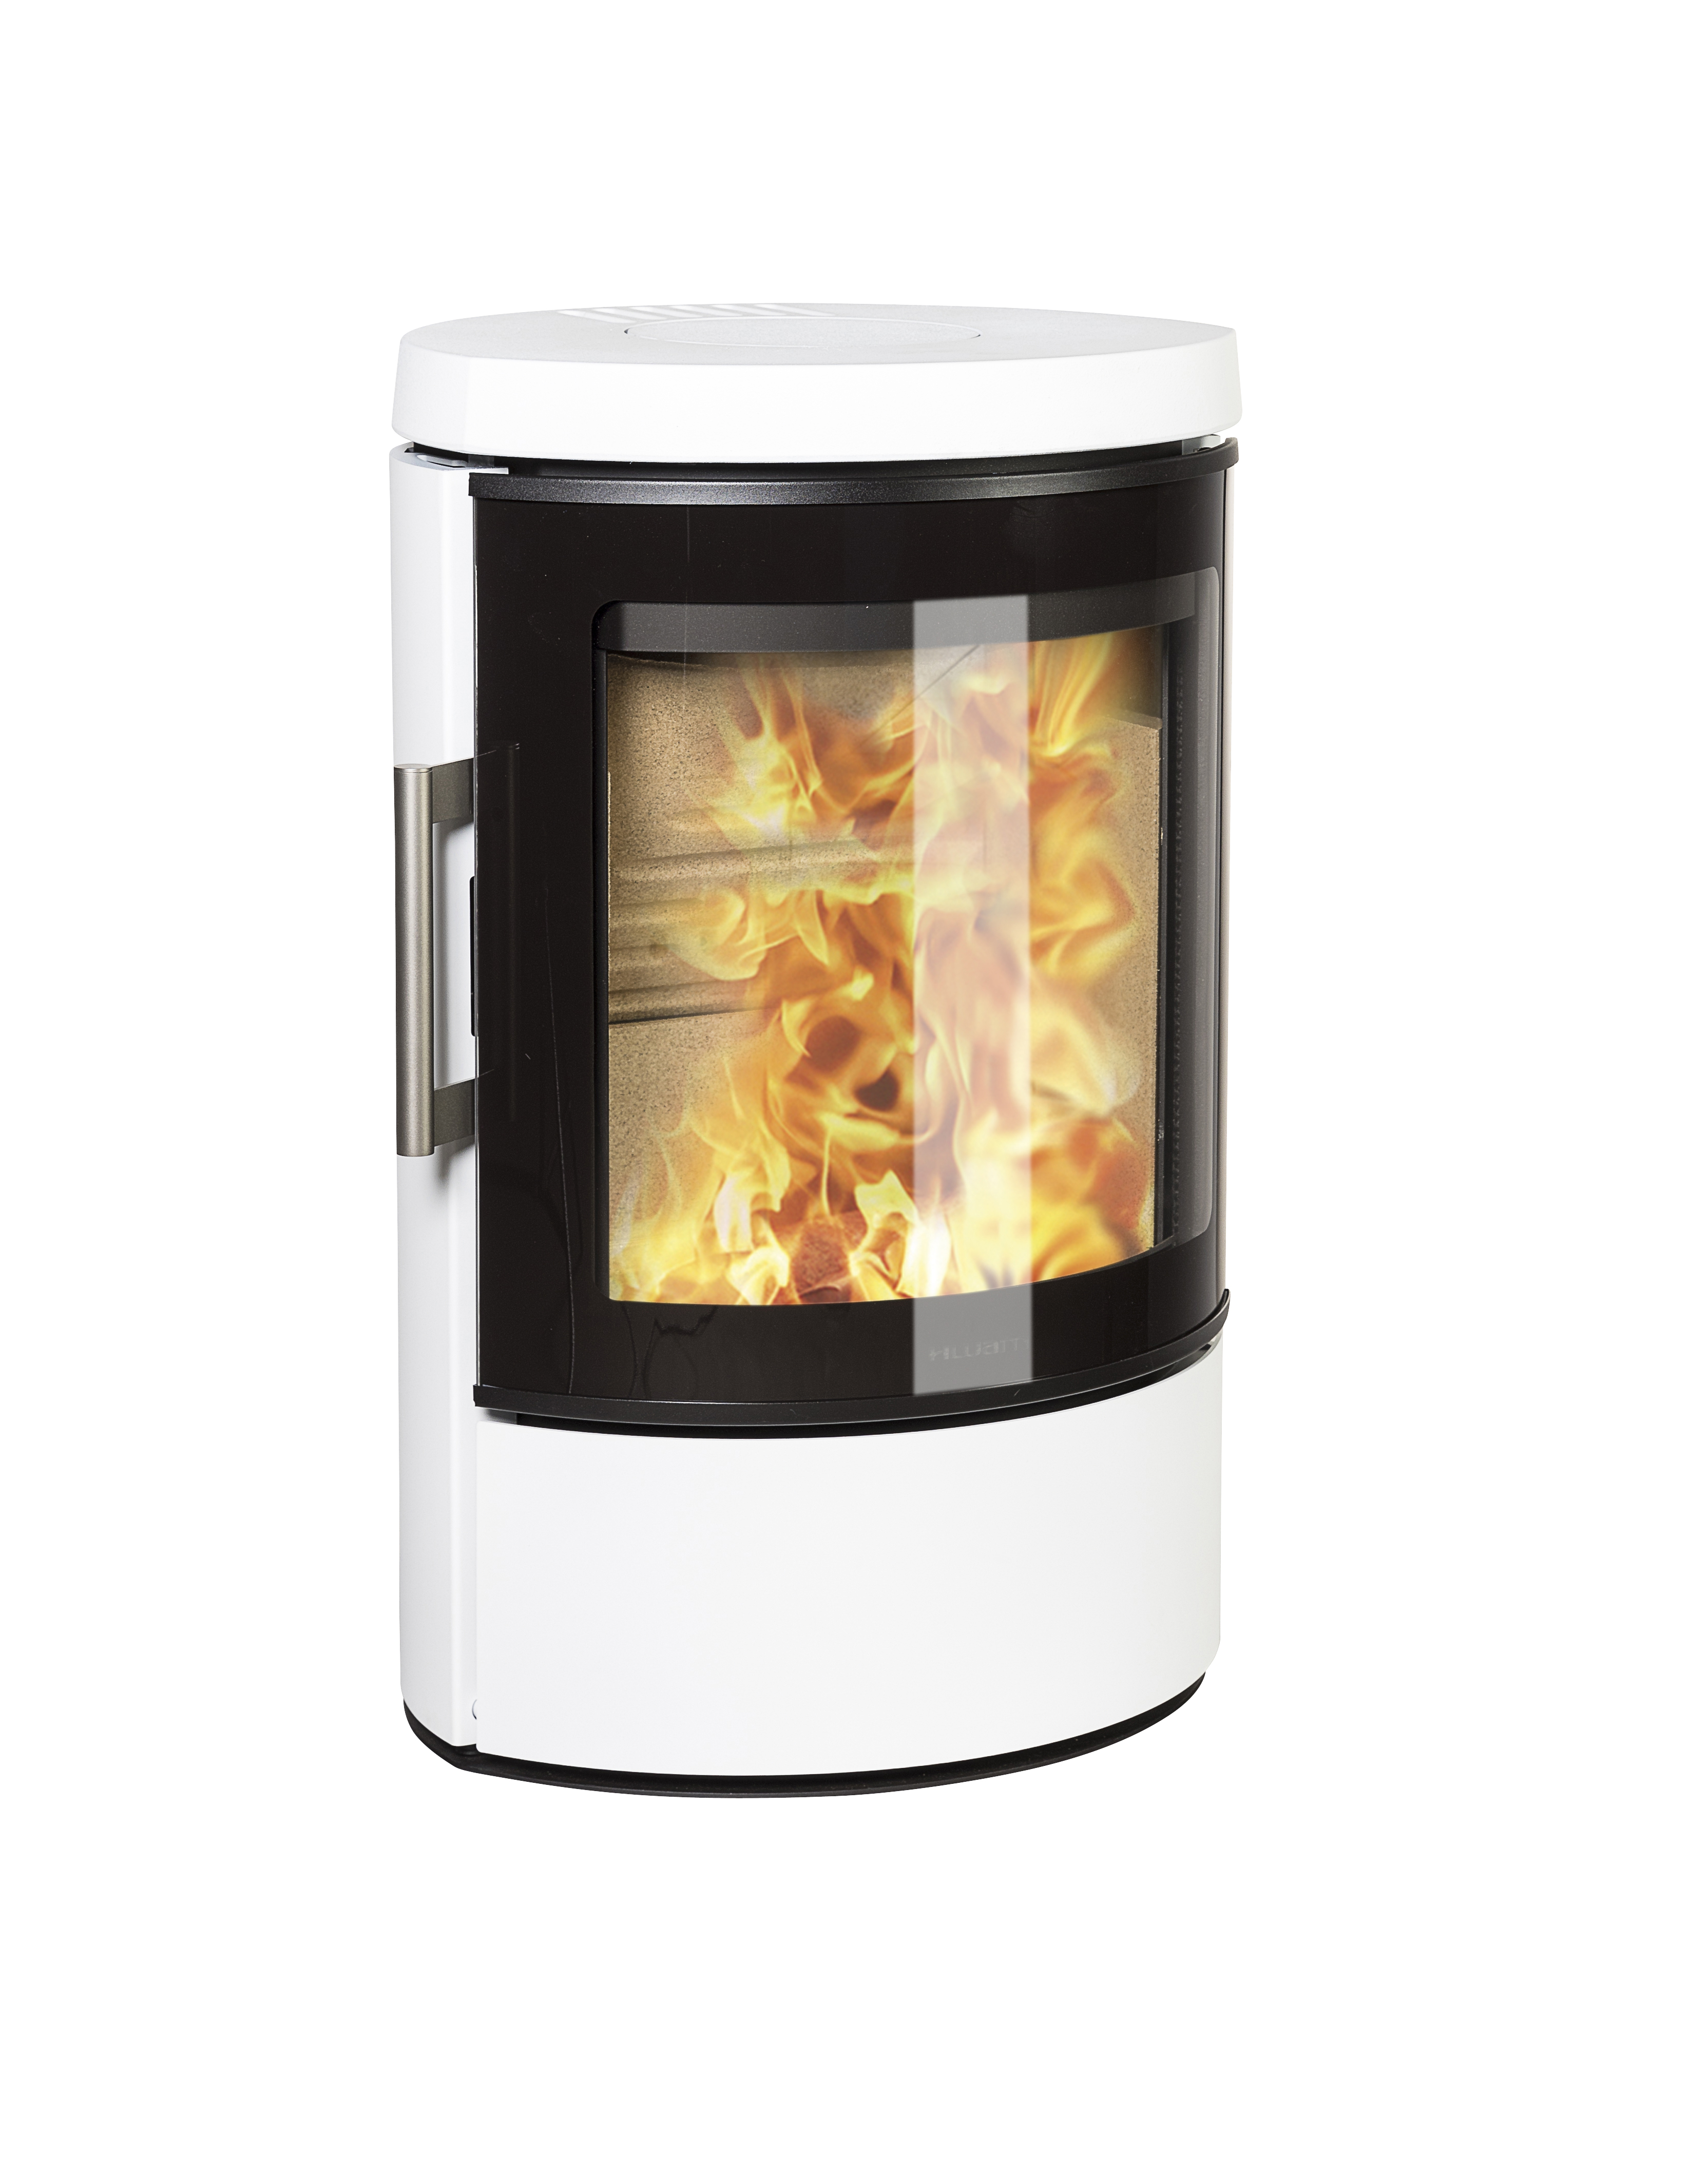 Hwam 3110 Wood Stove In White With A Energy Rating